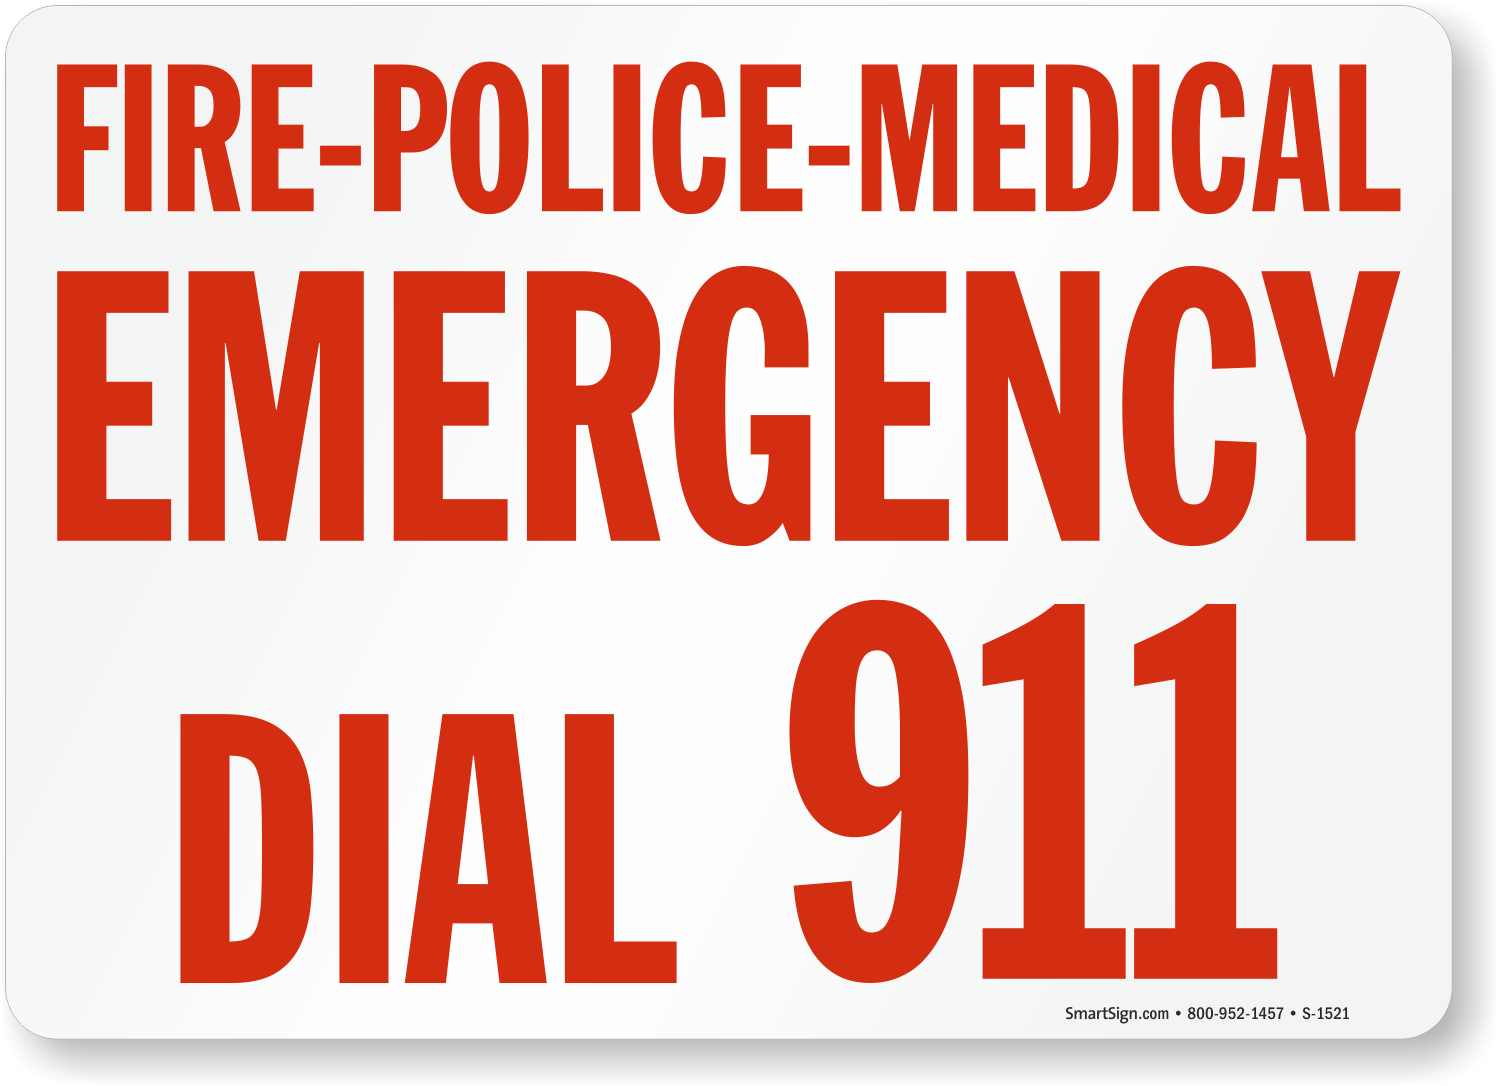 Fire Police Medical Emergency Dial 911 Signs, Fire and